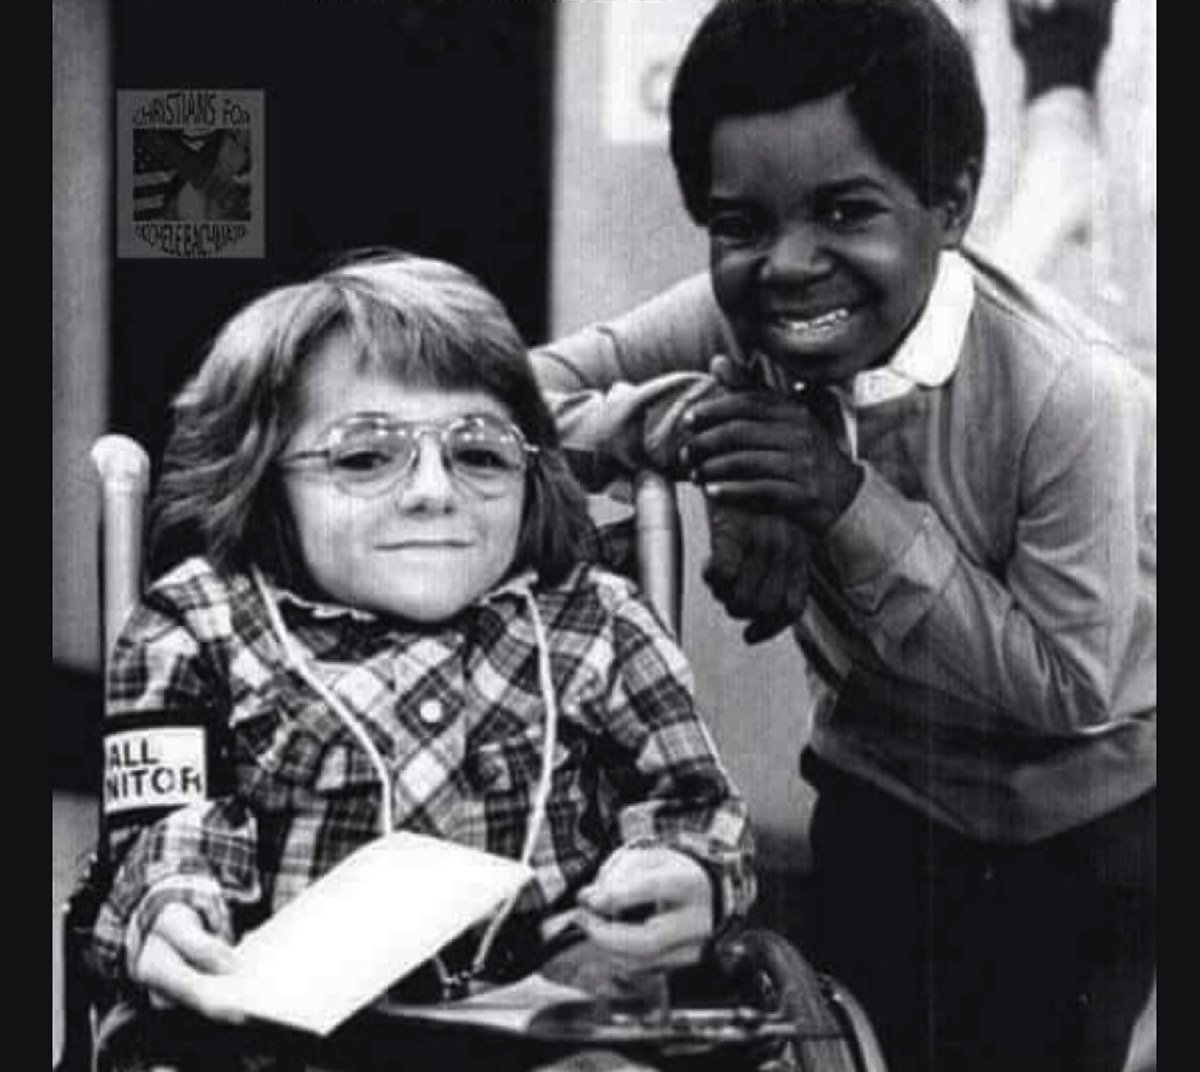 No. Contrary to widespread suspicions, Stephen Hawking and I were never buddies in childhood.